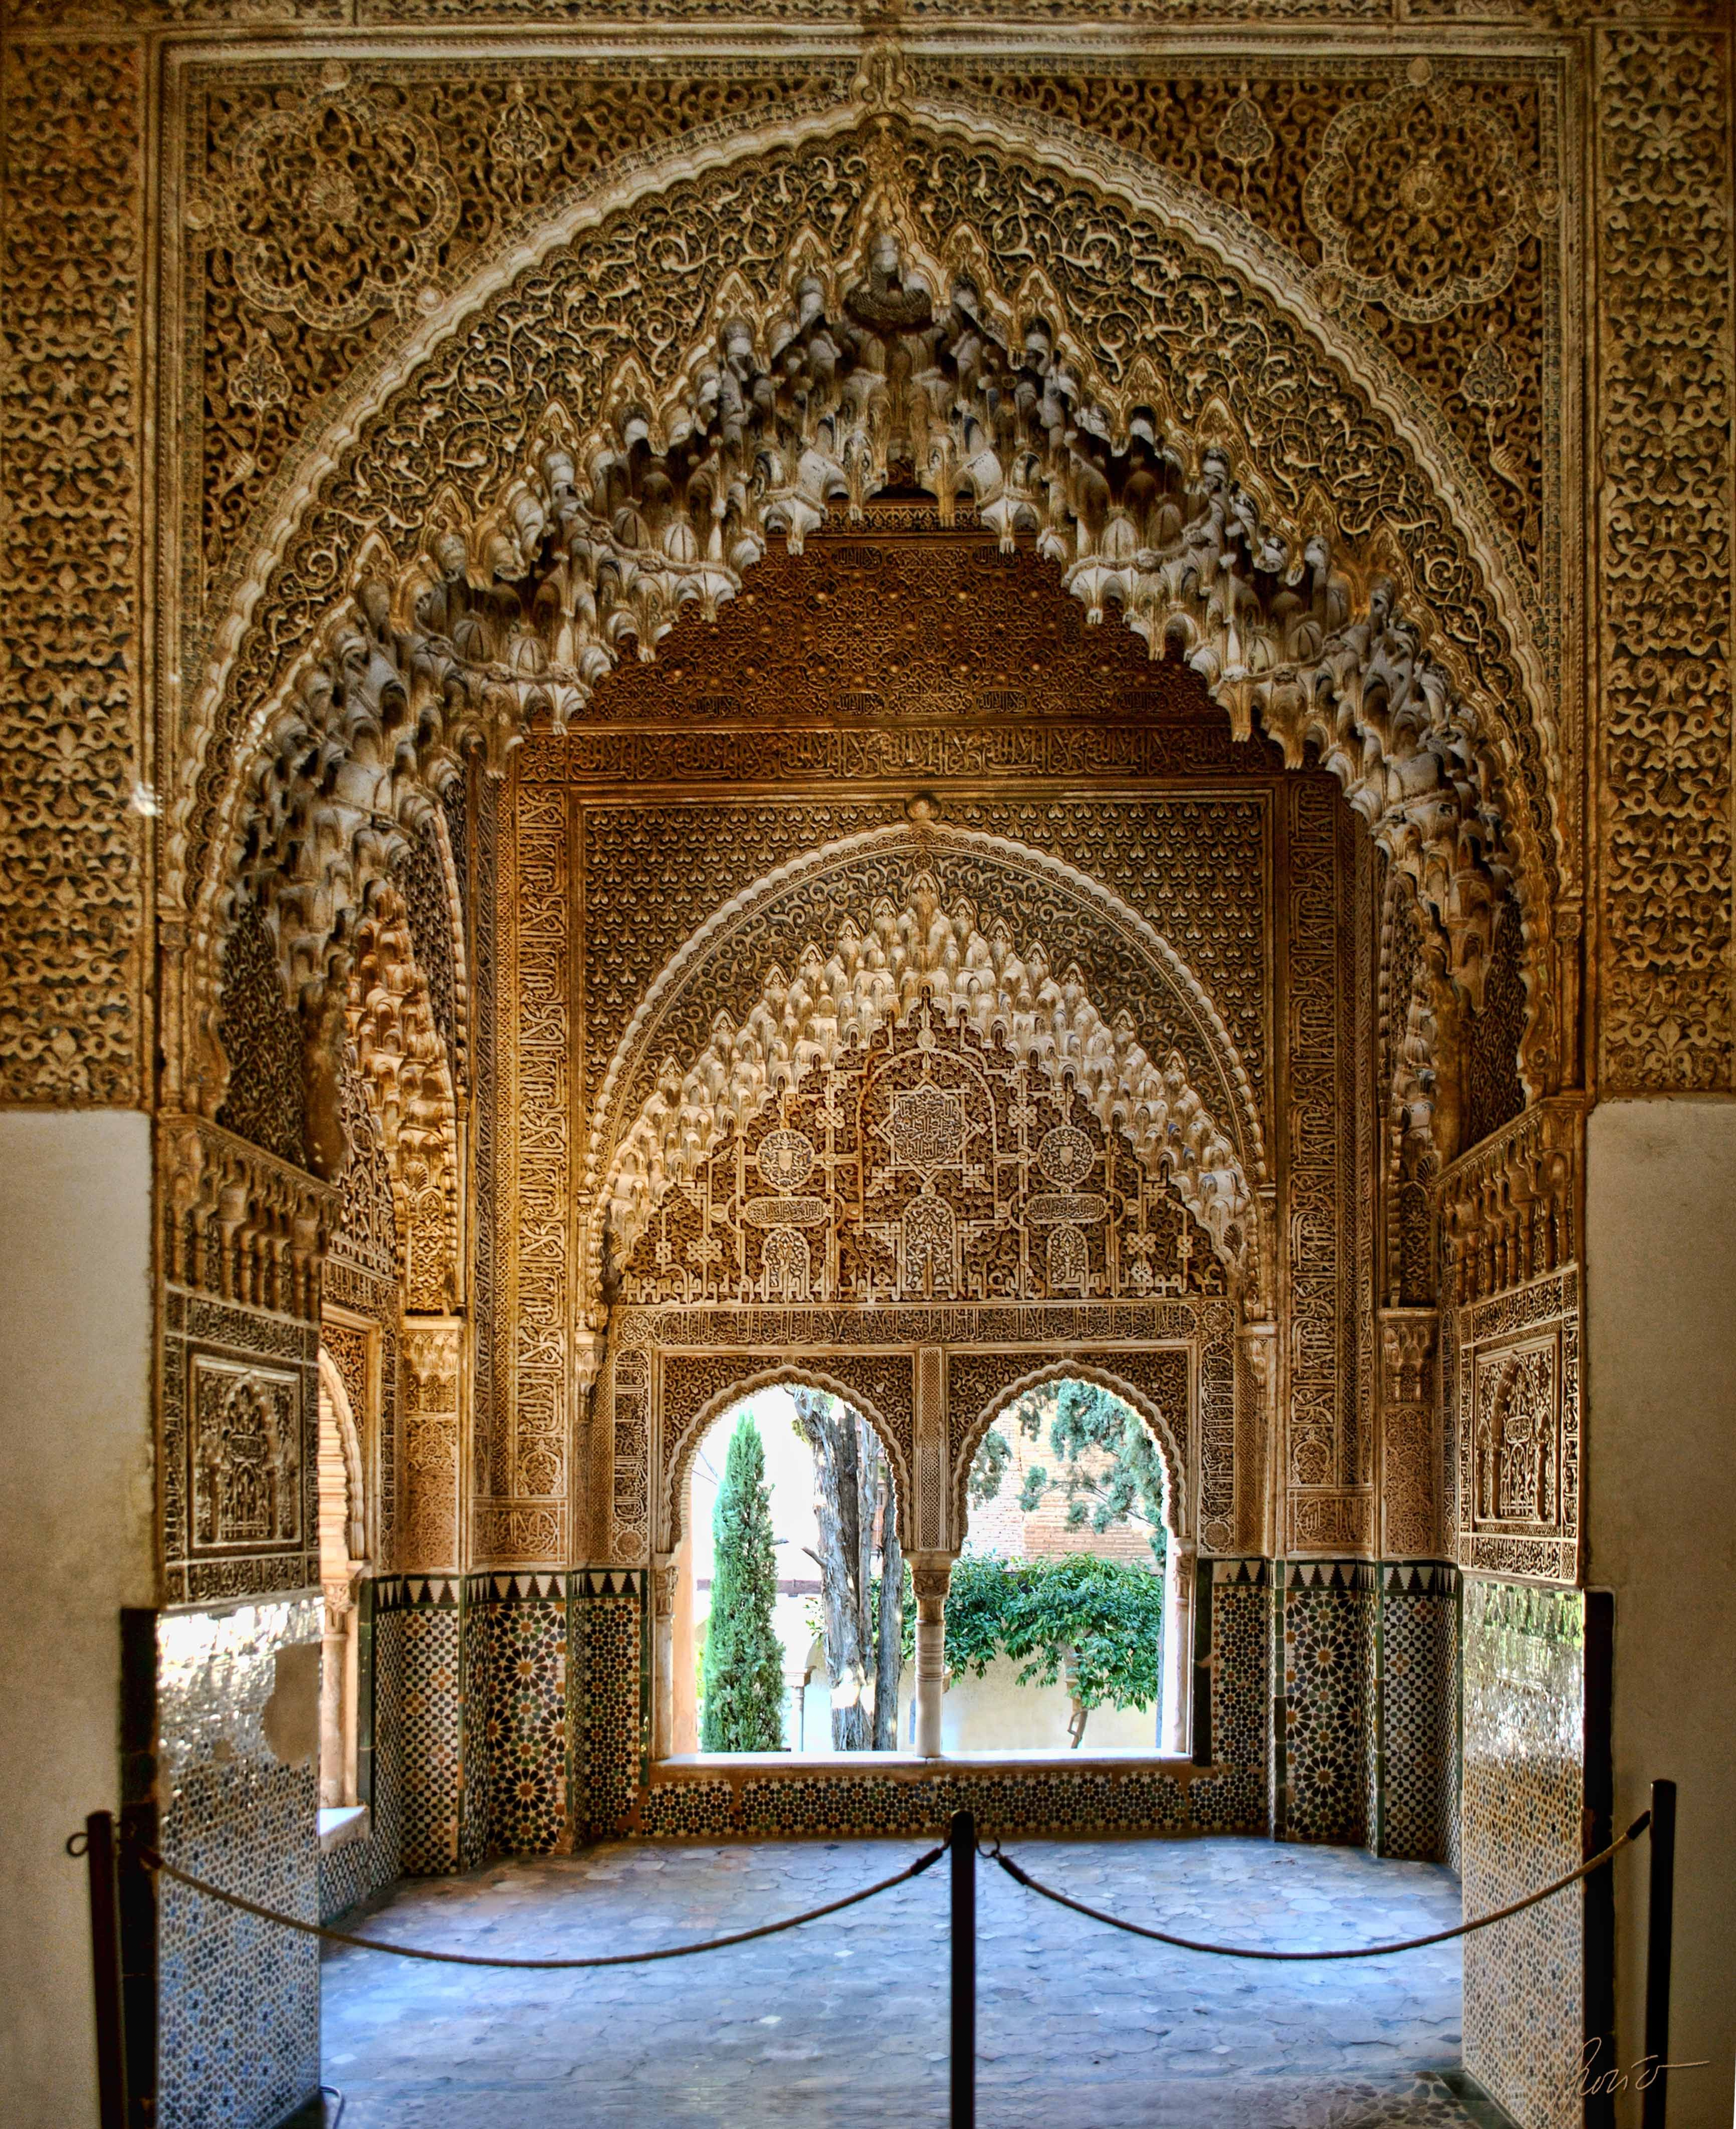 Muebles Andalucia Cordoba Alhambra Palace Google Search Alhambra Alcazar